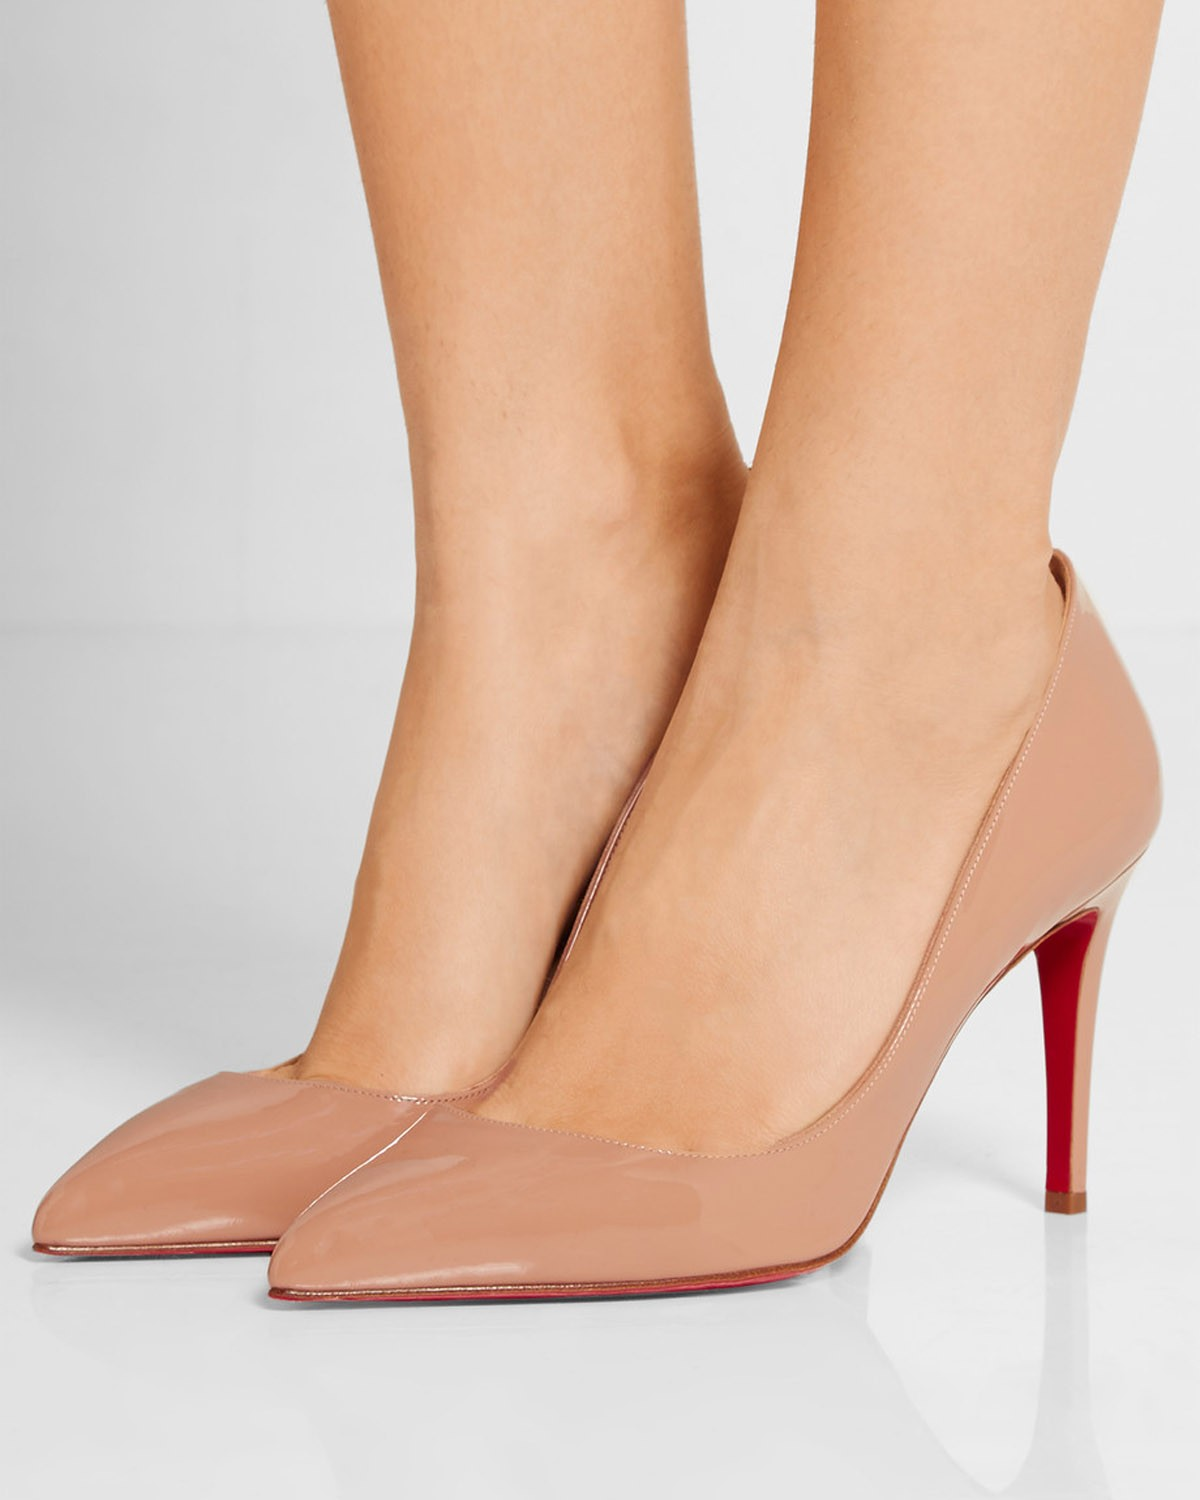 286e4130393 CHRISTIAN LOUBOUTIN Pigalle 85 patent-leather pumps - Shoes Post